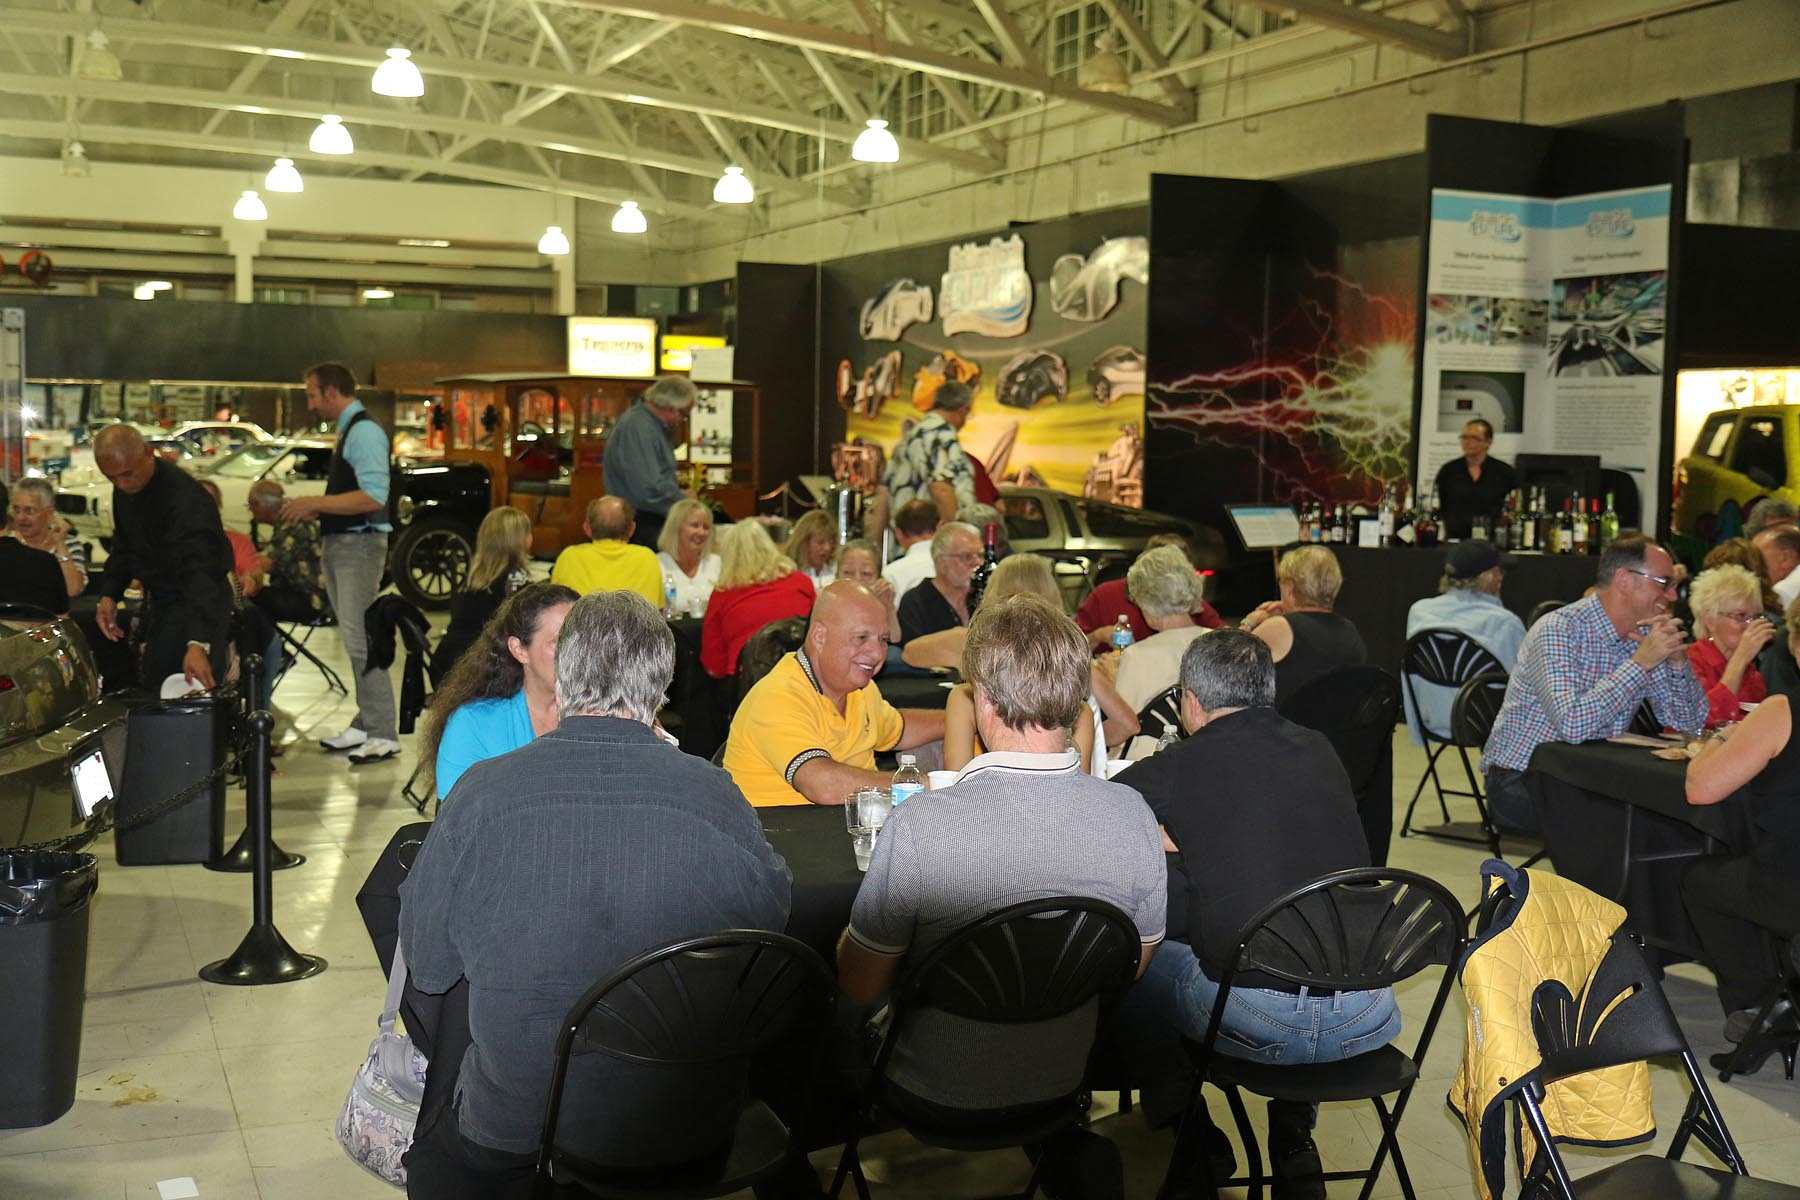 The Dinner Crowd at the Automotive Museum Friday Night